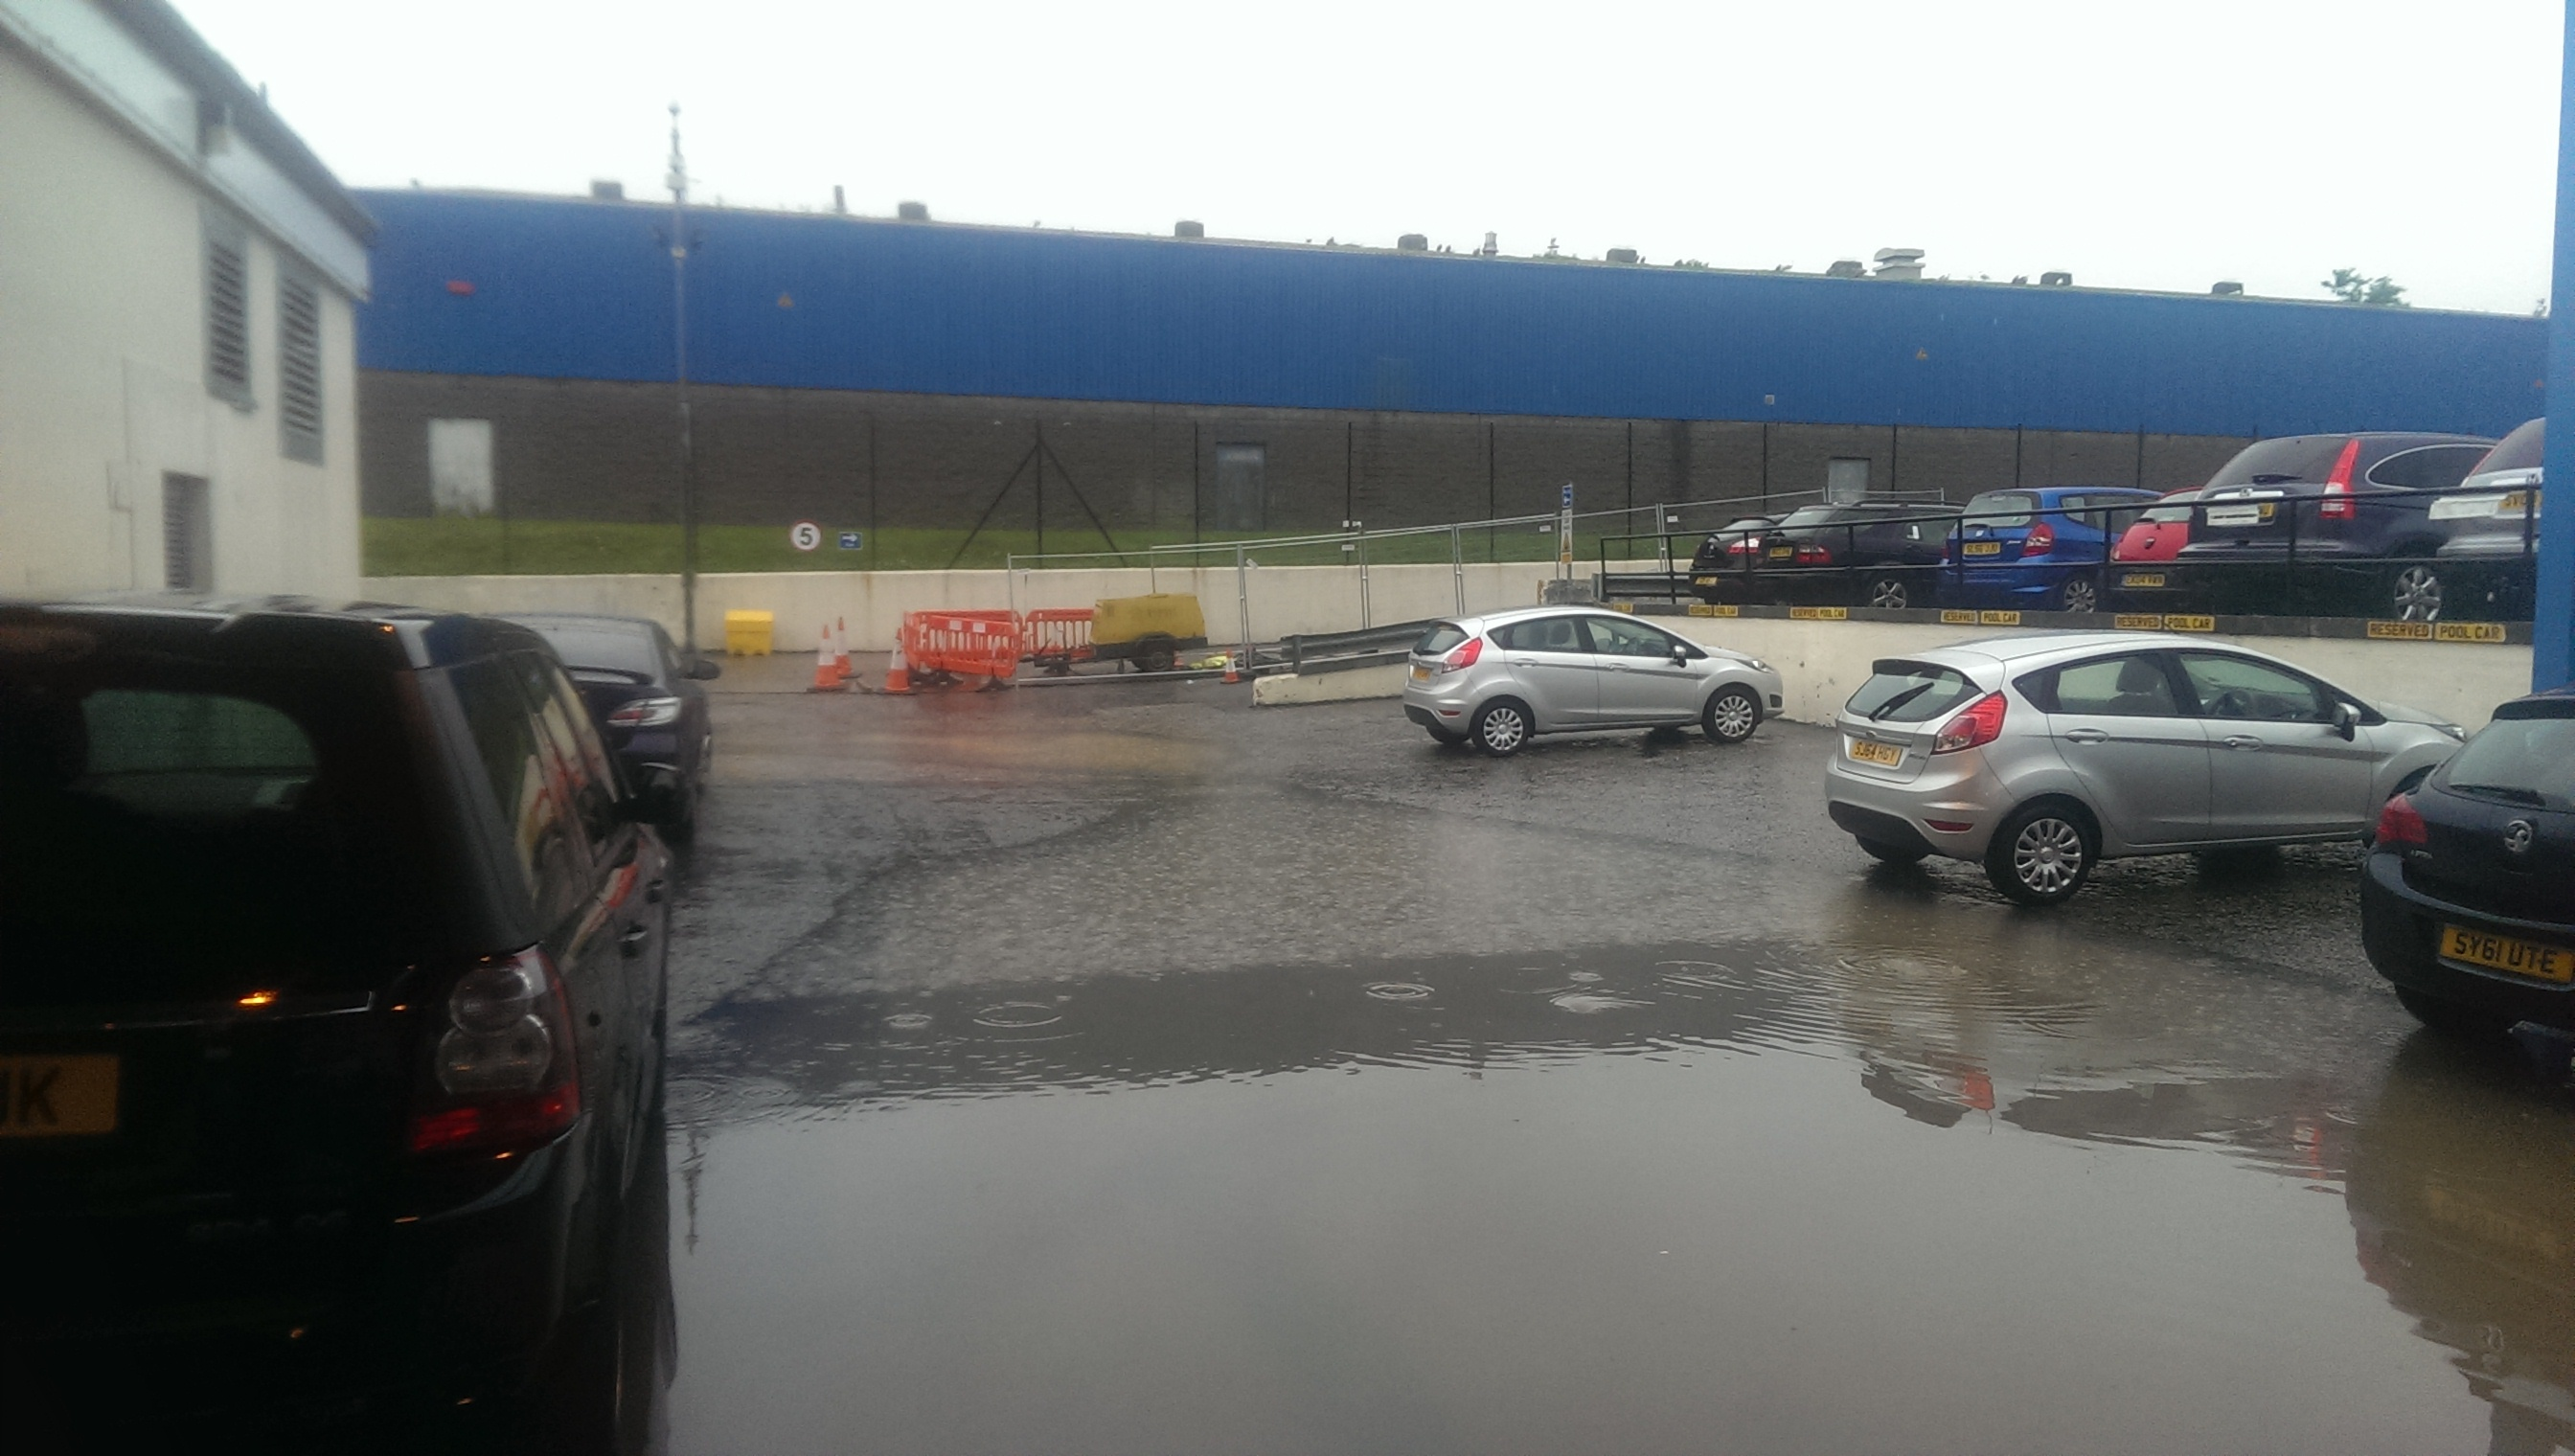 Press and Journal car park turning into a swimming pool